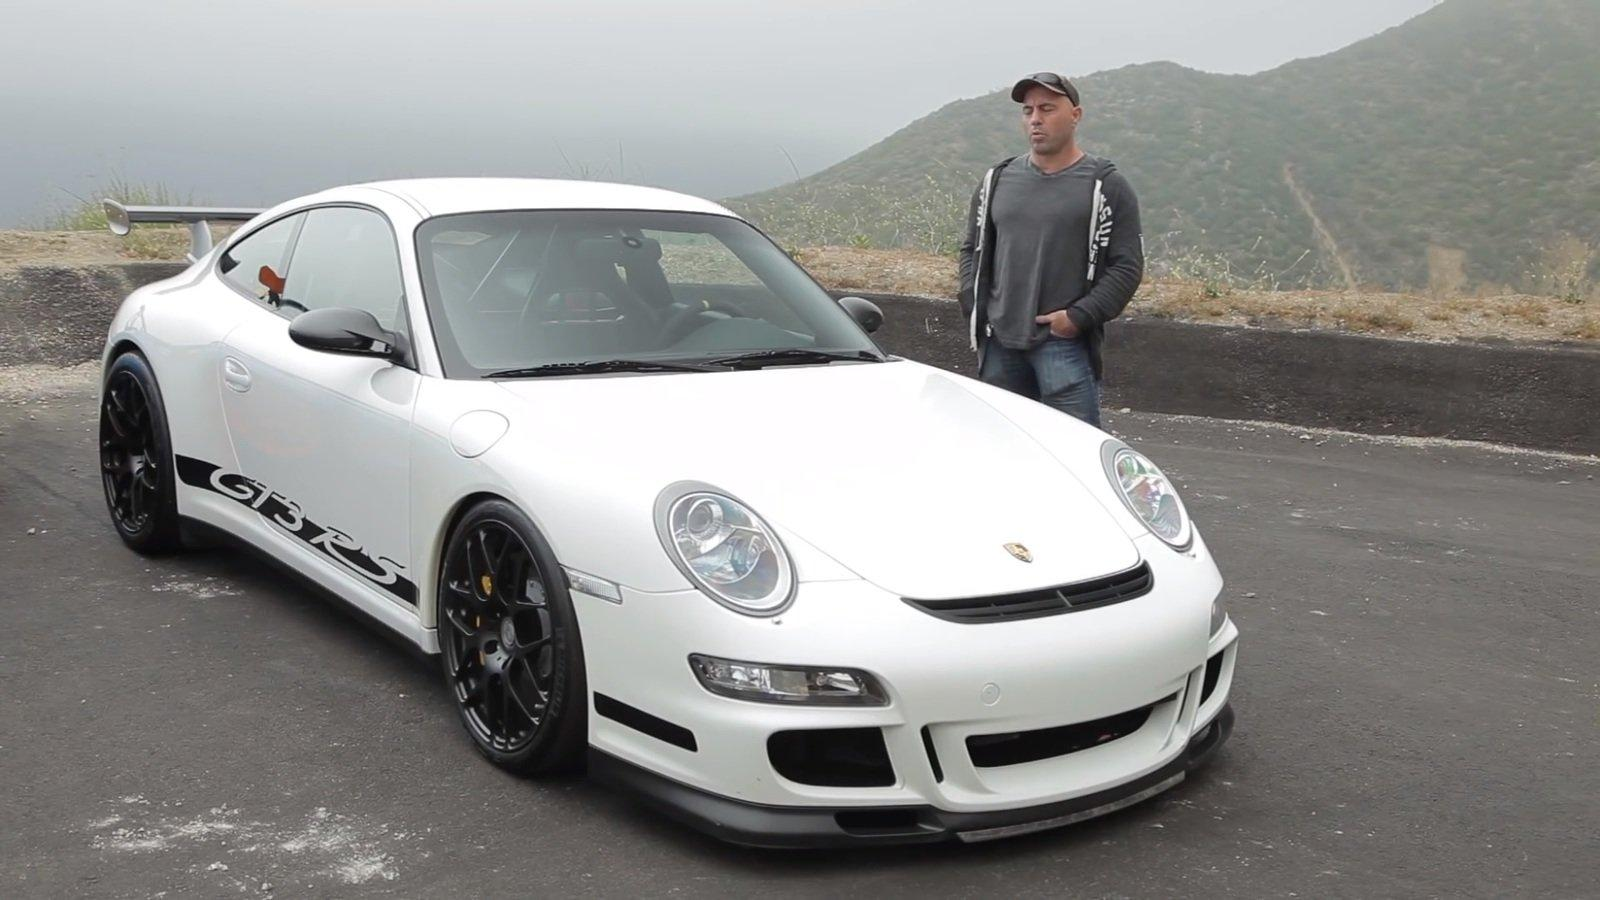 The Drive Takes A Spin In Joe Rogan's Sharkwerks Porsche GT3 RS | Top Speed